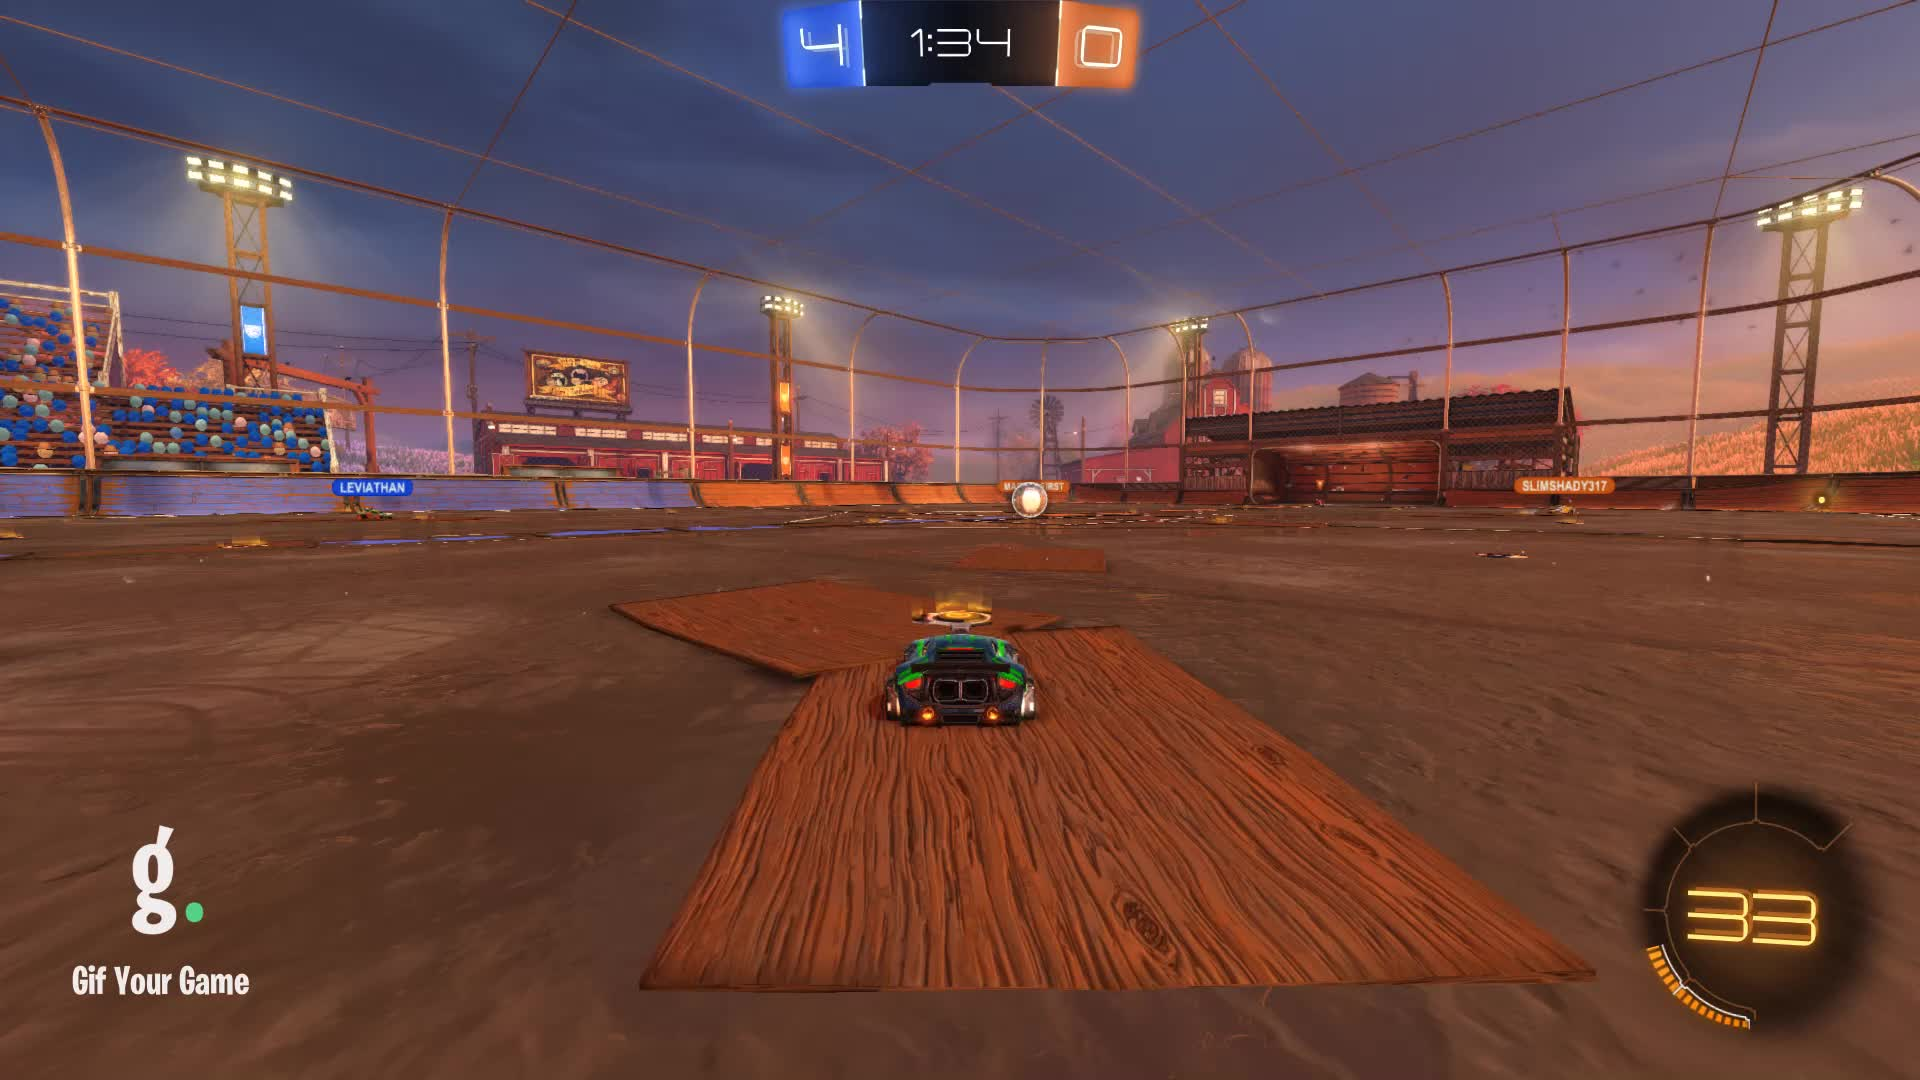 Assist, Duck Dodgers, Gif Your Game, GifYourGame, Rocket League, RocketLeague, Assist 4: Duck Dodgers GIFs